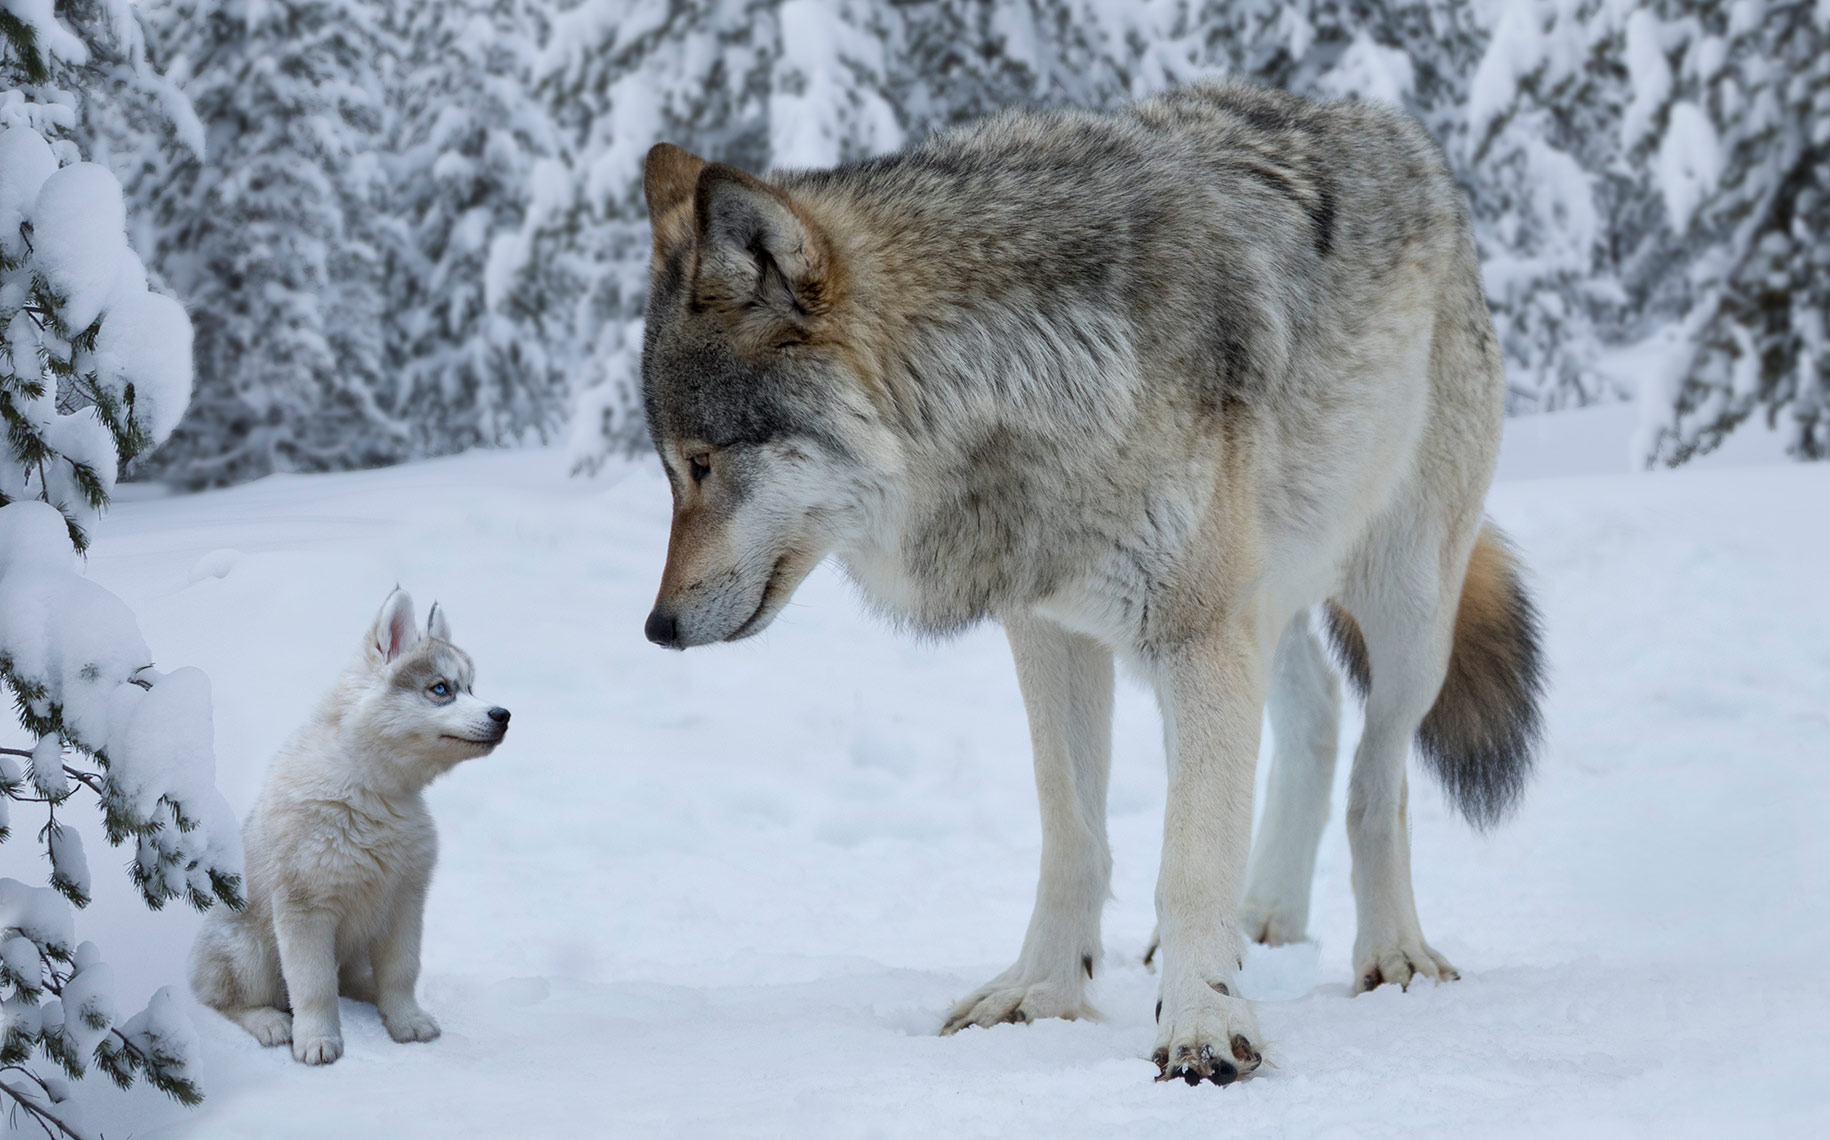 PUPPY-AND-WOLF_THE-BRAVE-LITTLE-PUPPY